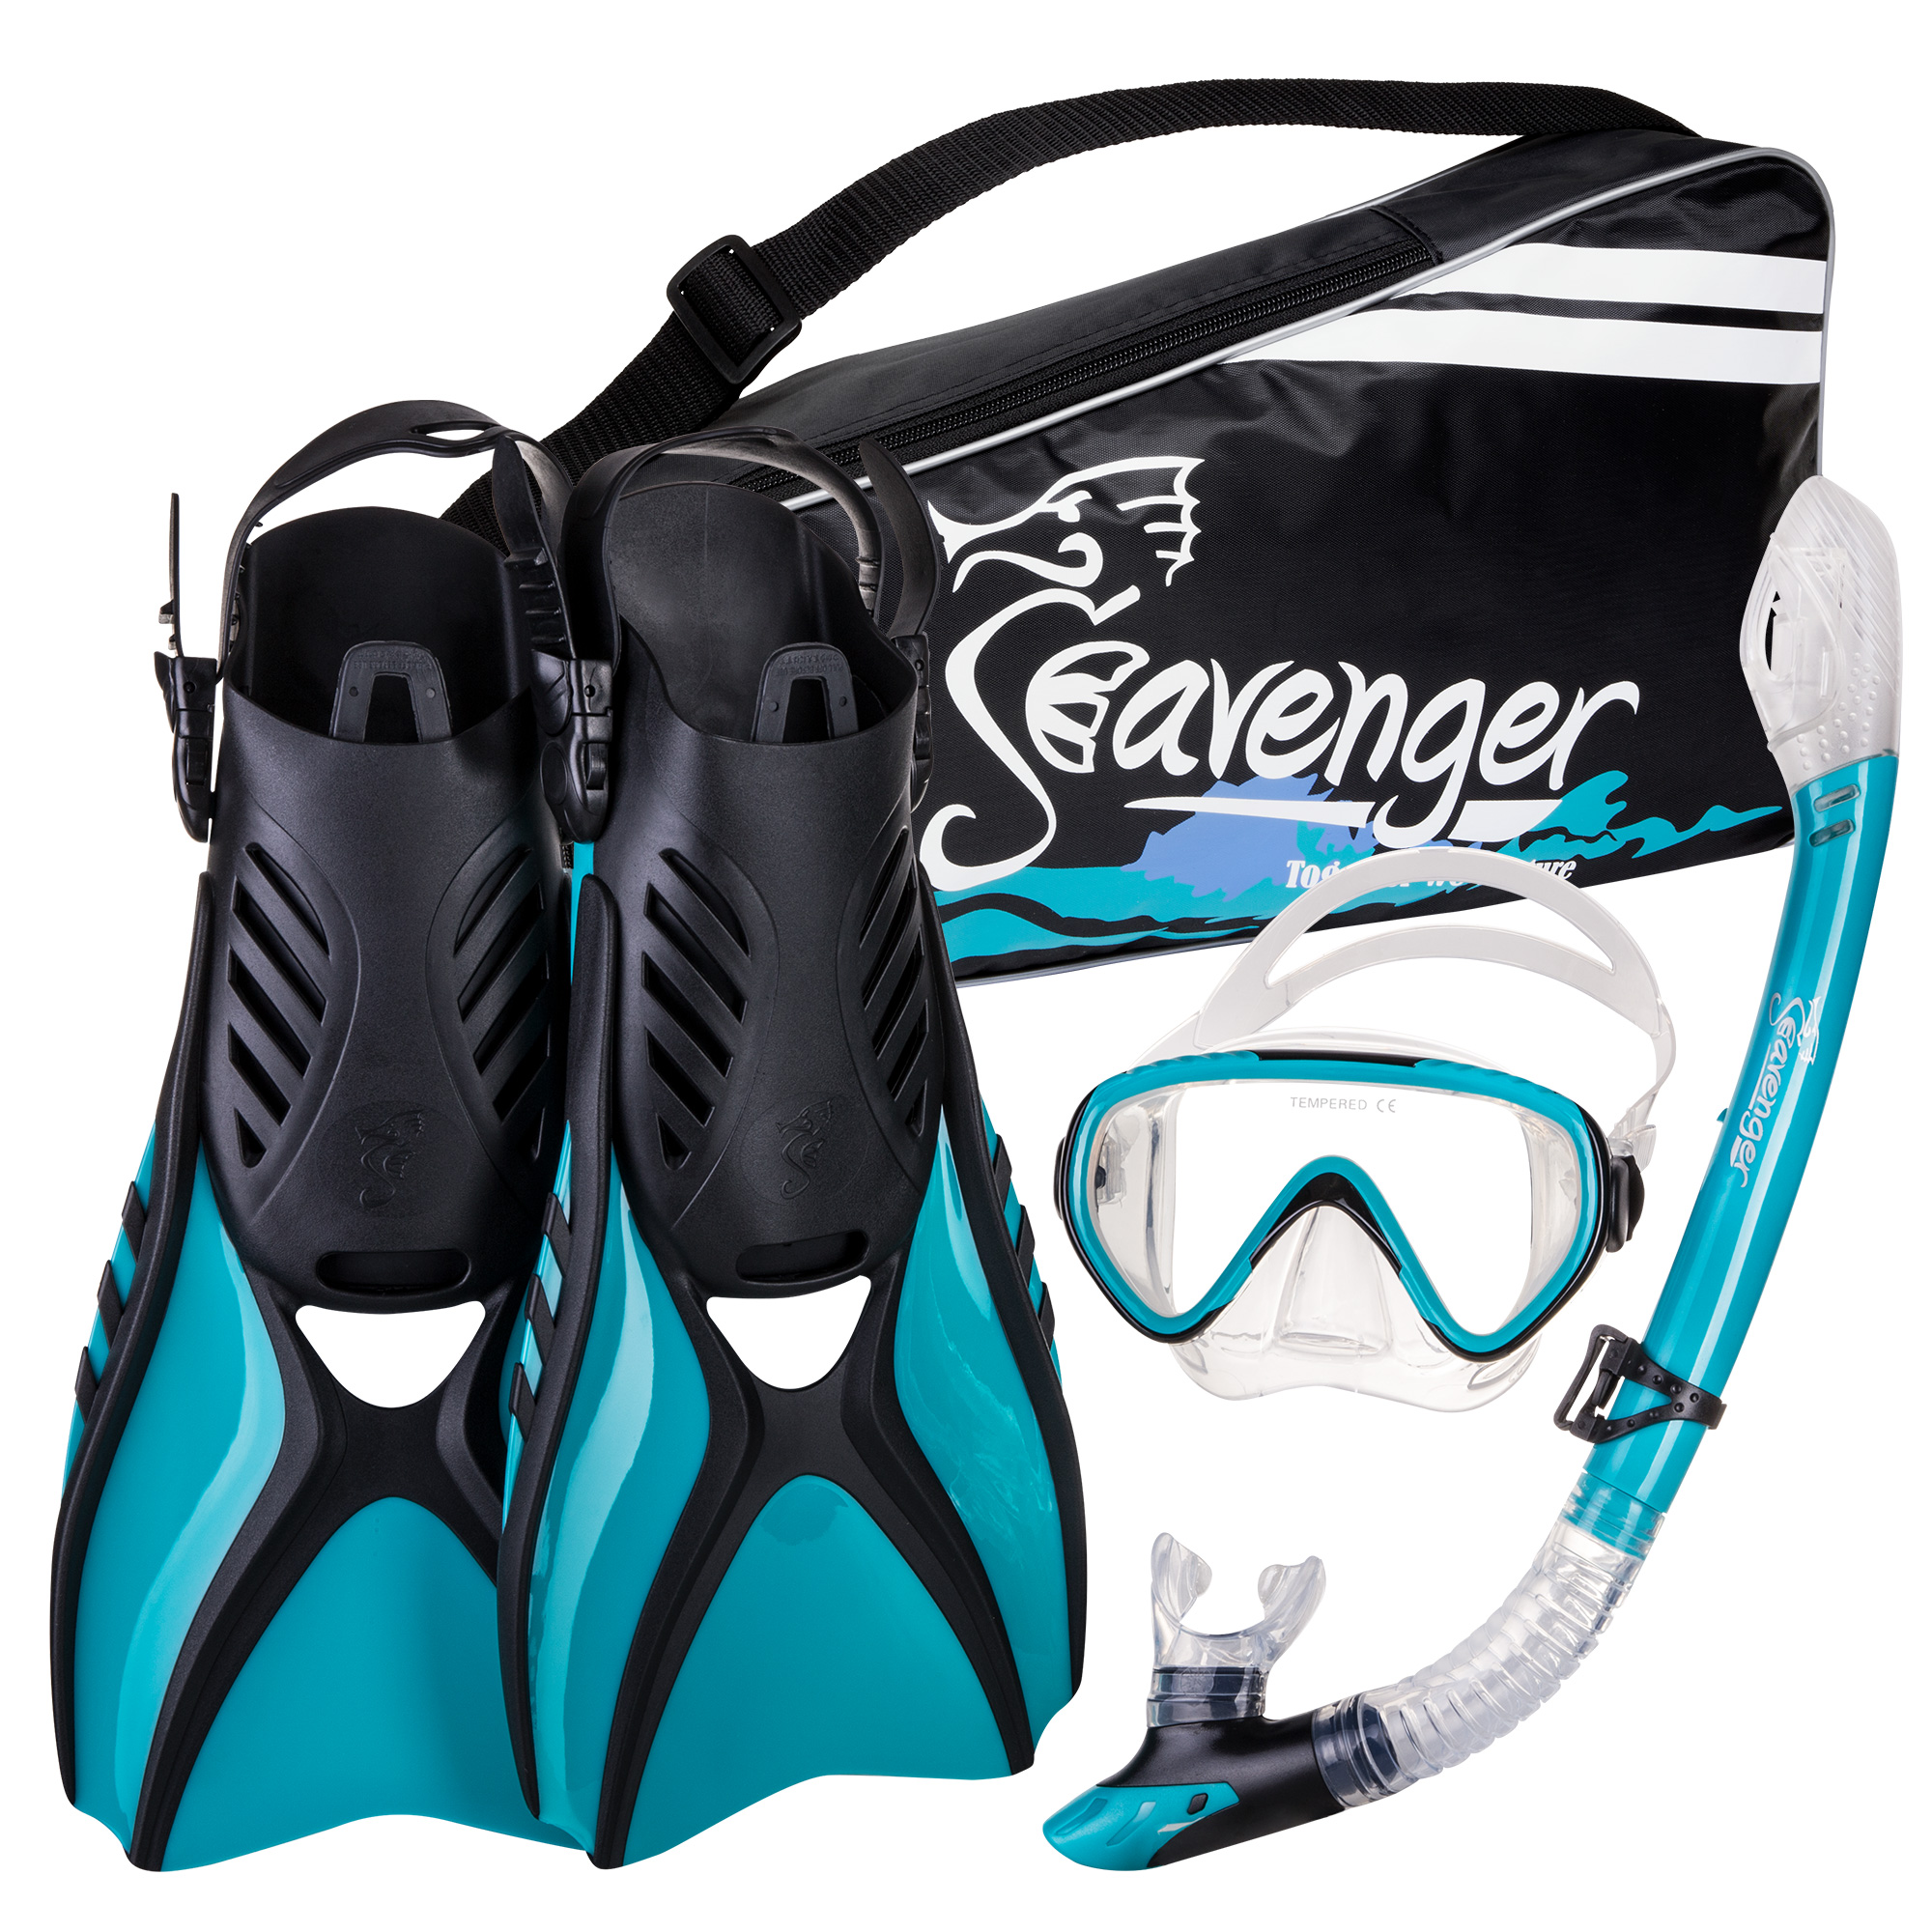 Seavenger Advanced Snorkeling Set with Panoramic Mask, Trek Fins, Dry Top Snorkel & Gear Bag (Clear Silicone/Teal, Medium)